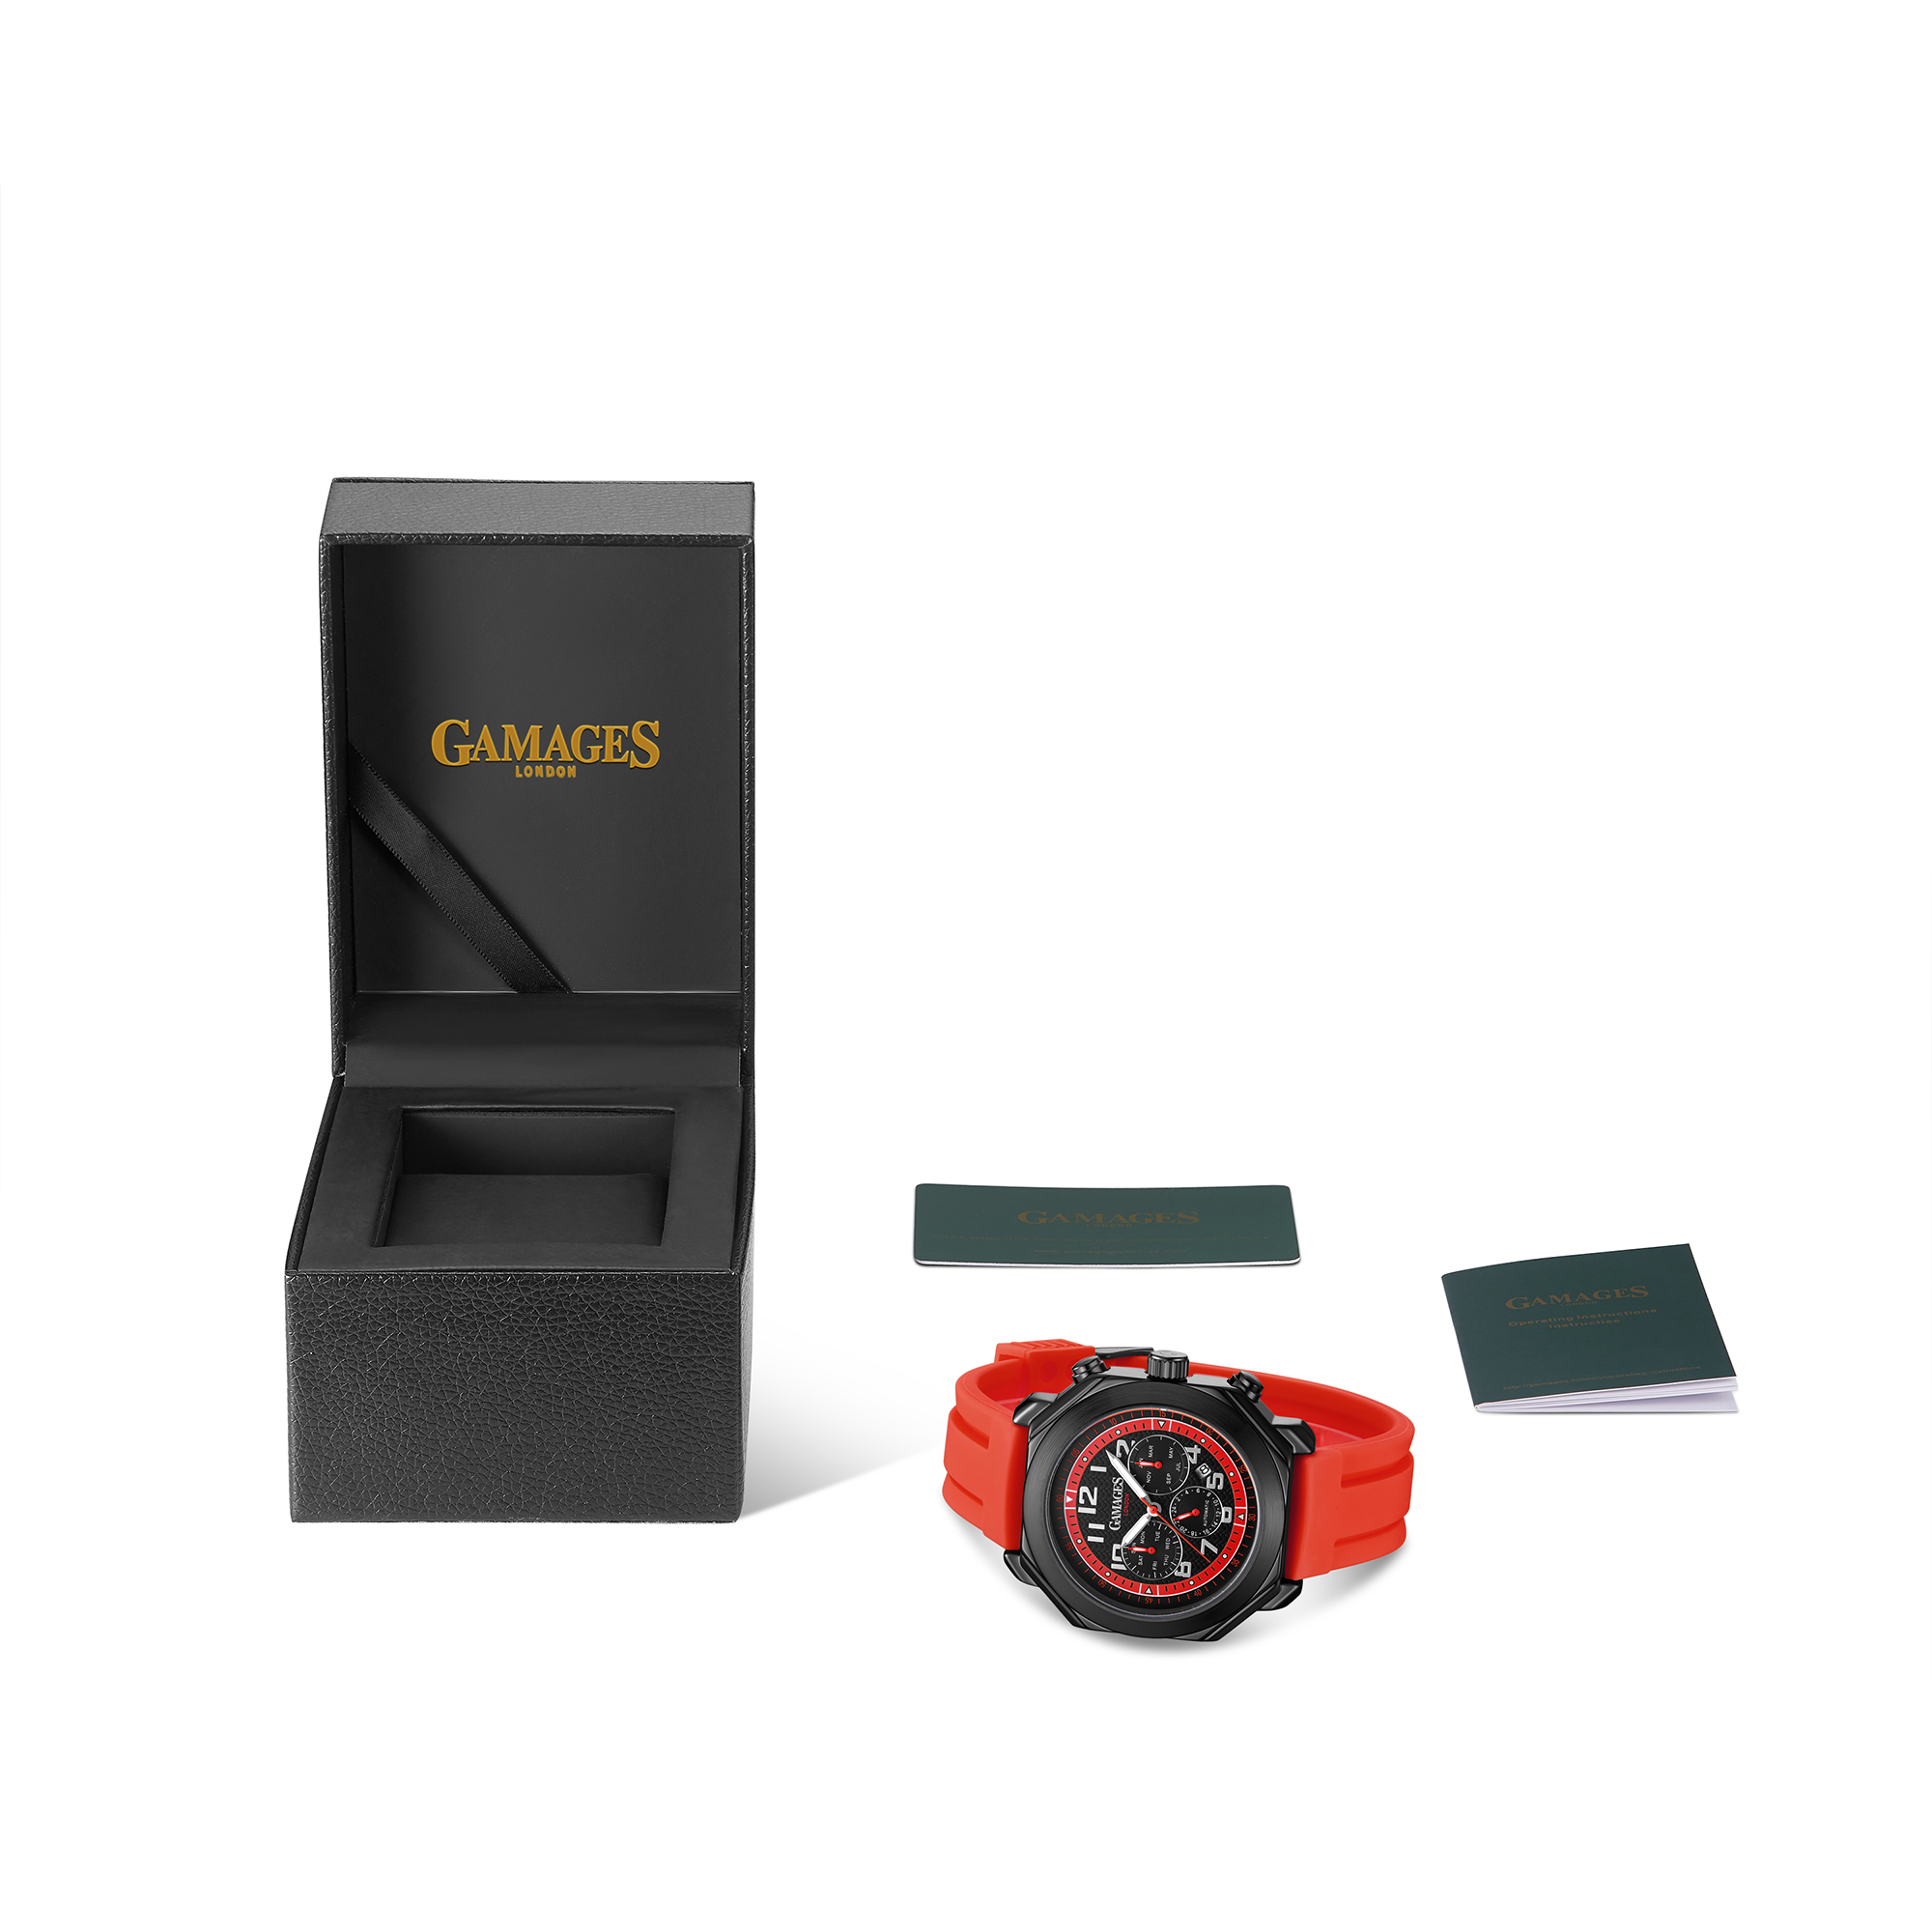 Limited Edition Hand Assembled GAMAGES Hour Timer Contemporary Red – 5 Year Warranty & Free Delivery - Image 3 of 5